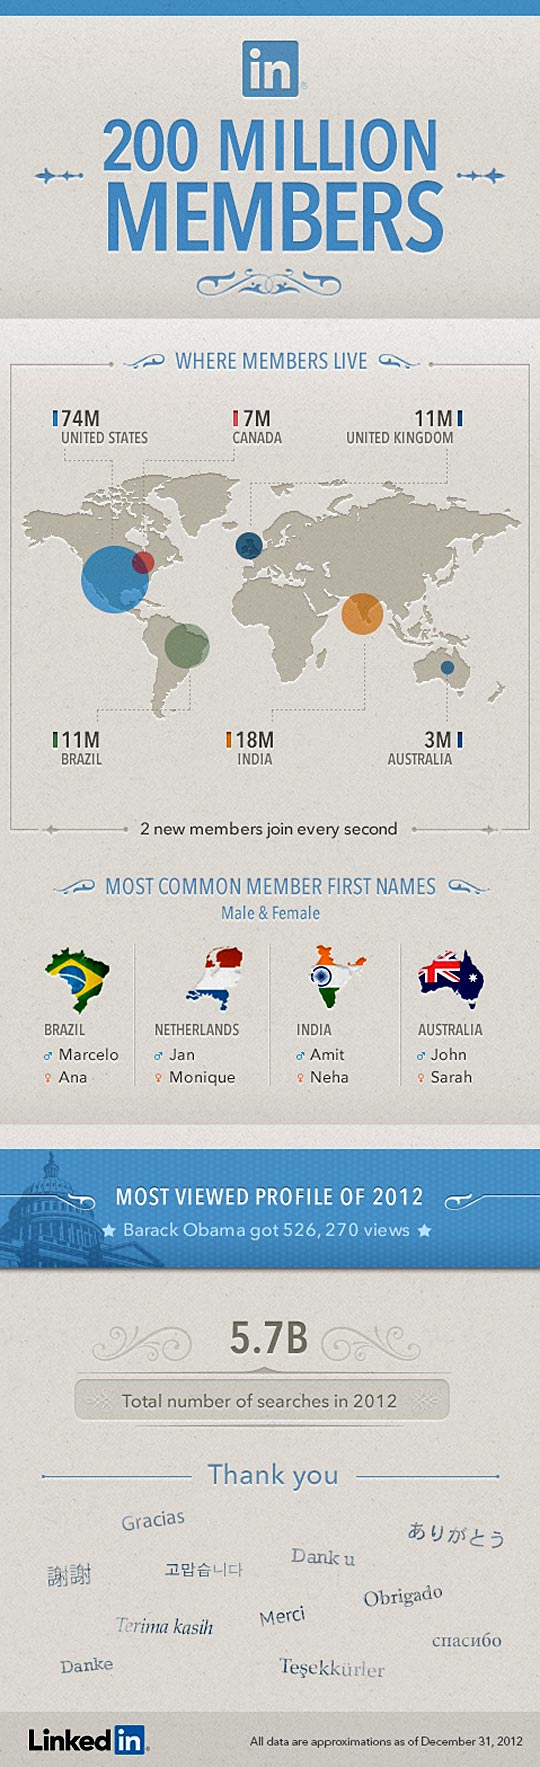 LinkedIn 20 0Million Members 2013